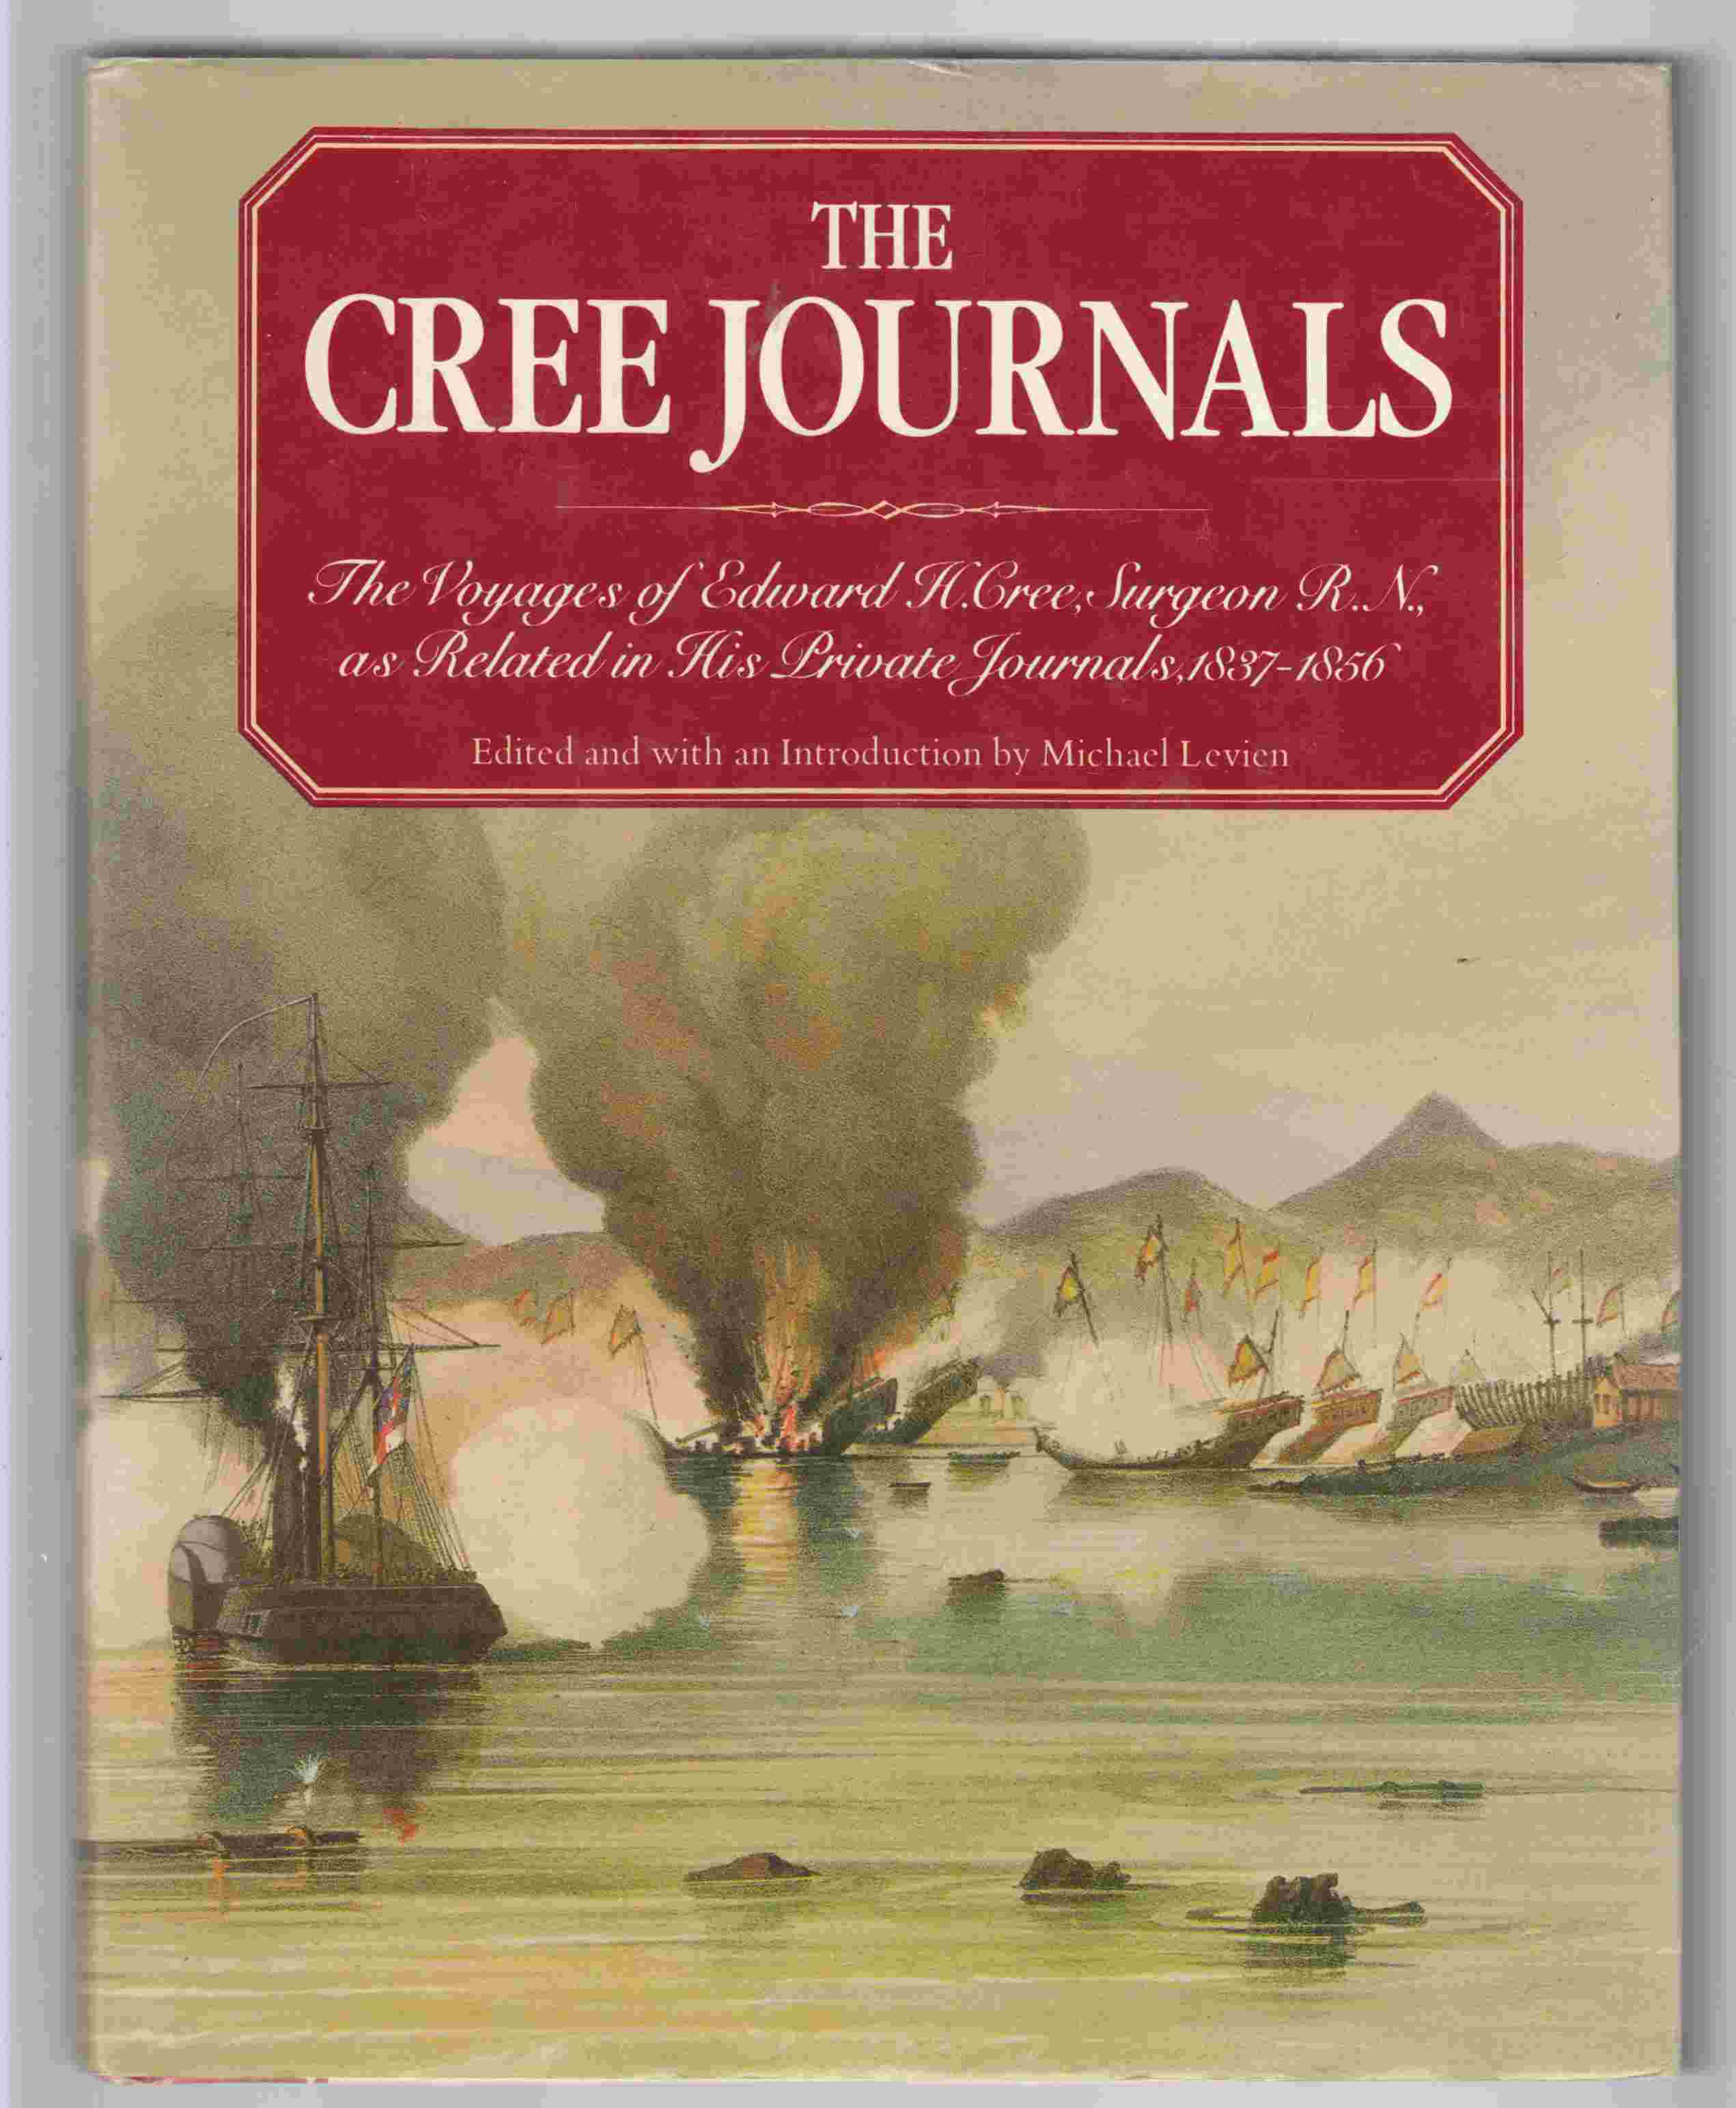 Image for The Cree Journals The Voyages of Edward H. Cree, Surgeon R. N. As Related in His Private Journals, 1837-1856